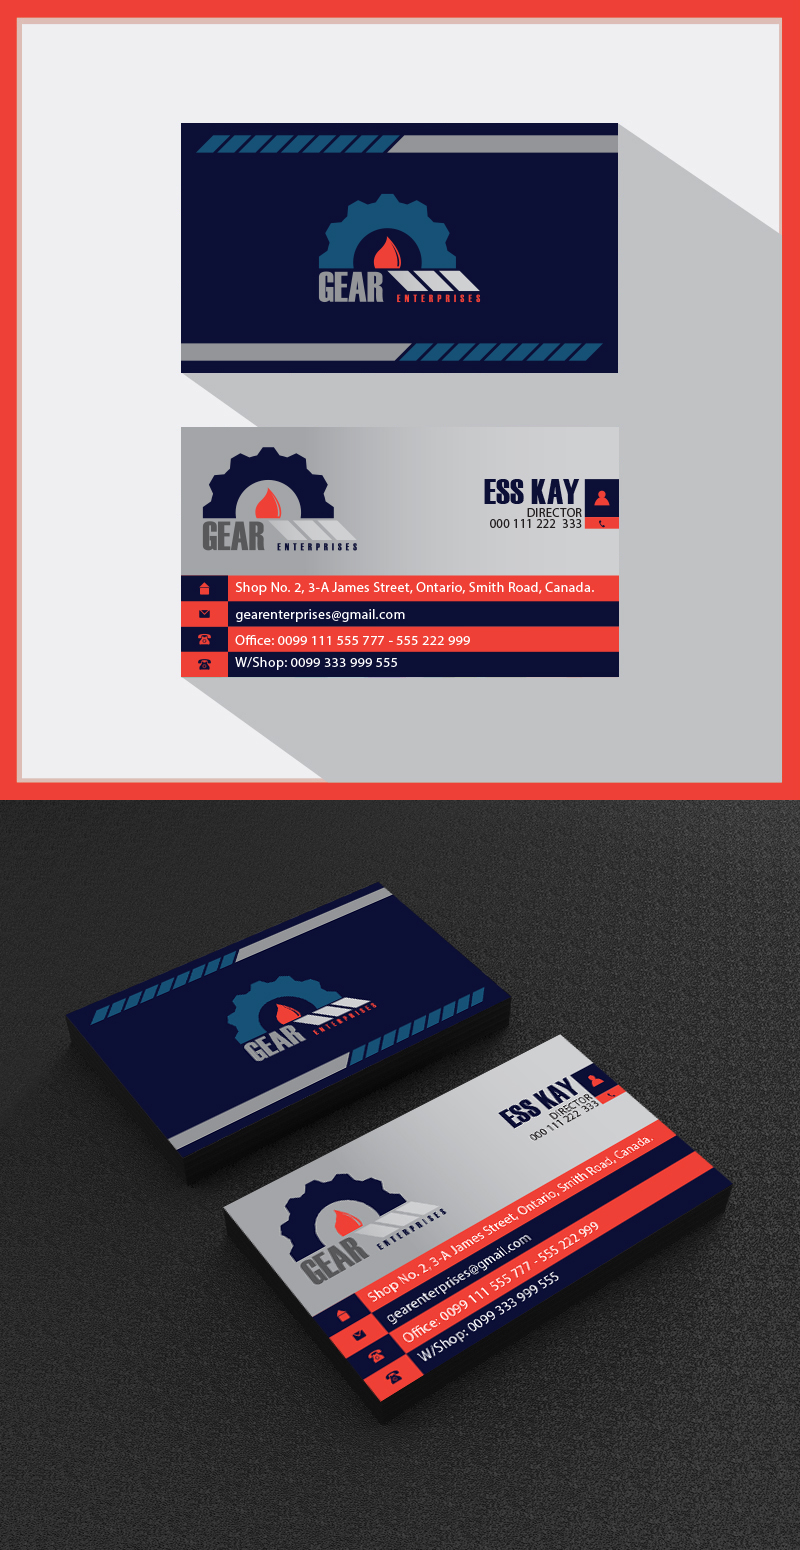 60 business card template designs collection a graphic world business card template design for engineering company reheart